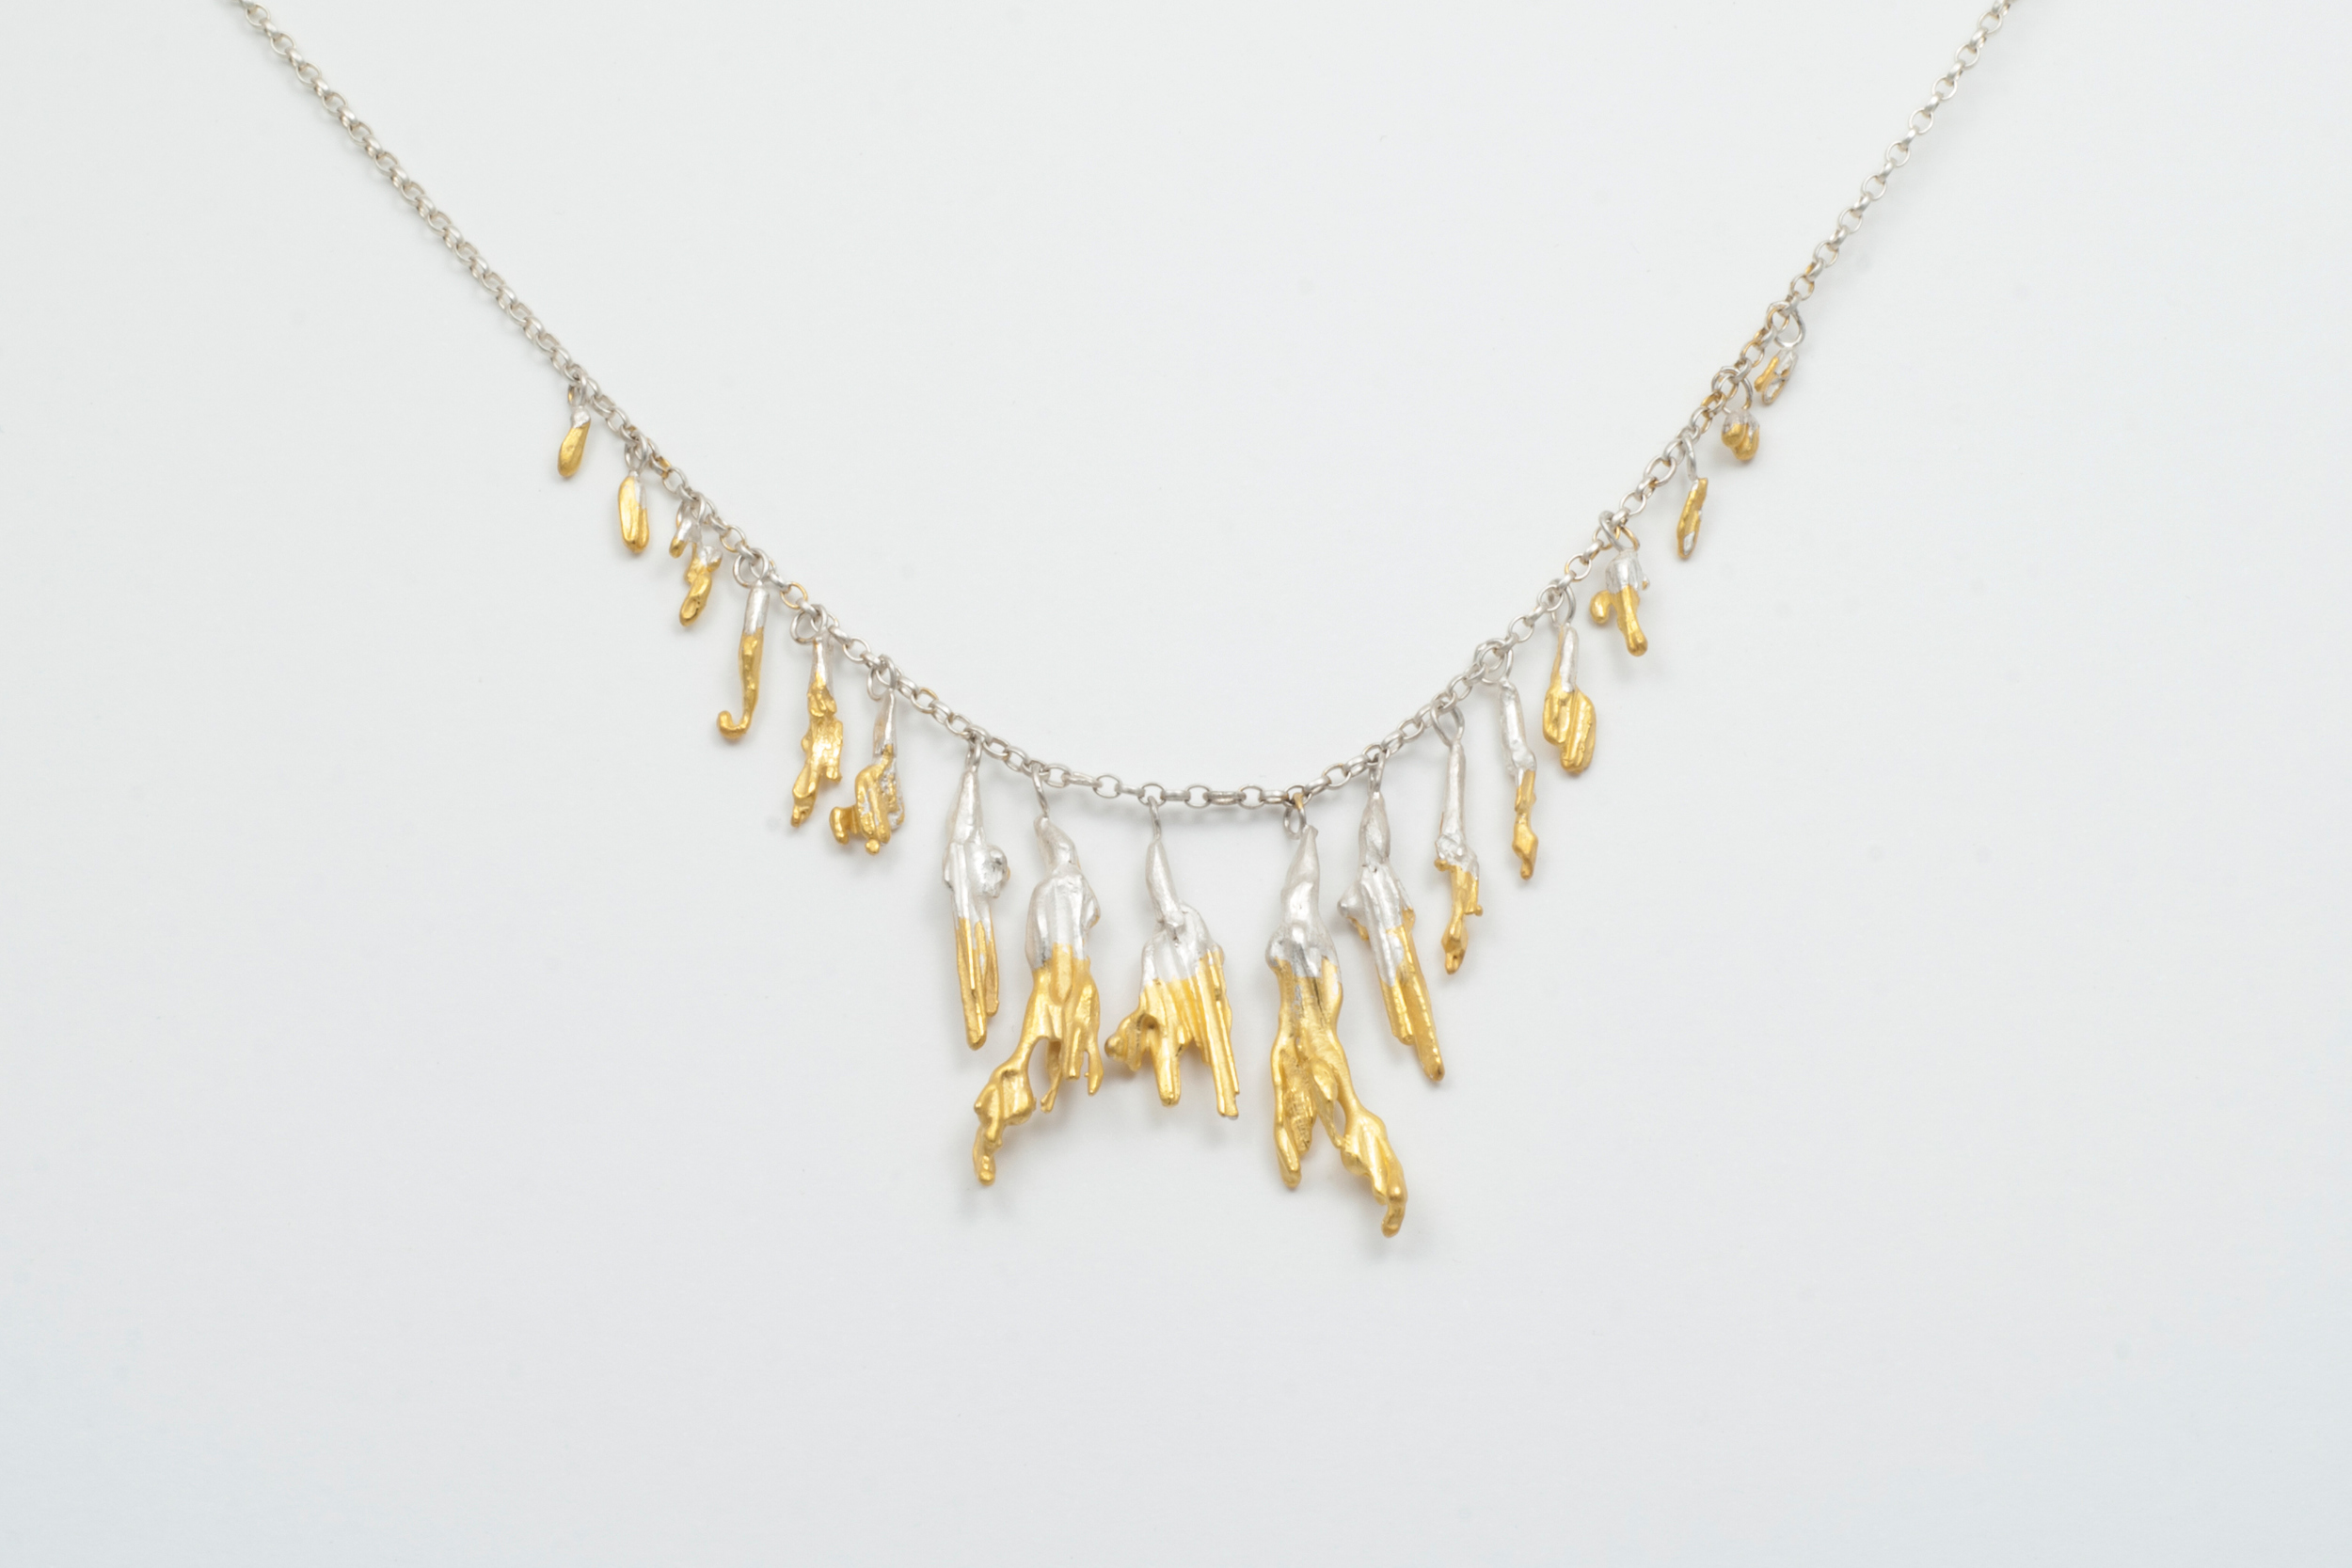 Gold-dipped-necklace-web.jpg